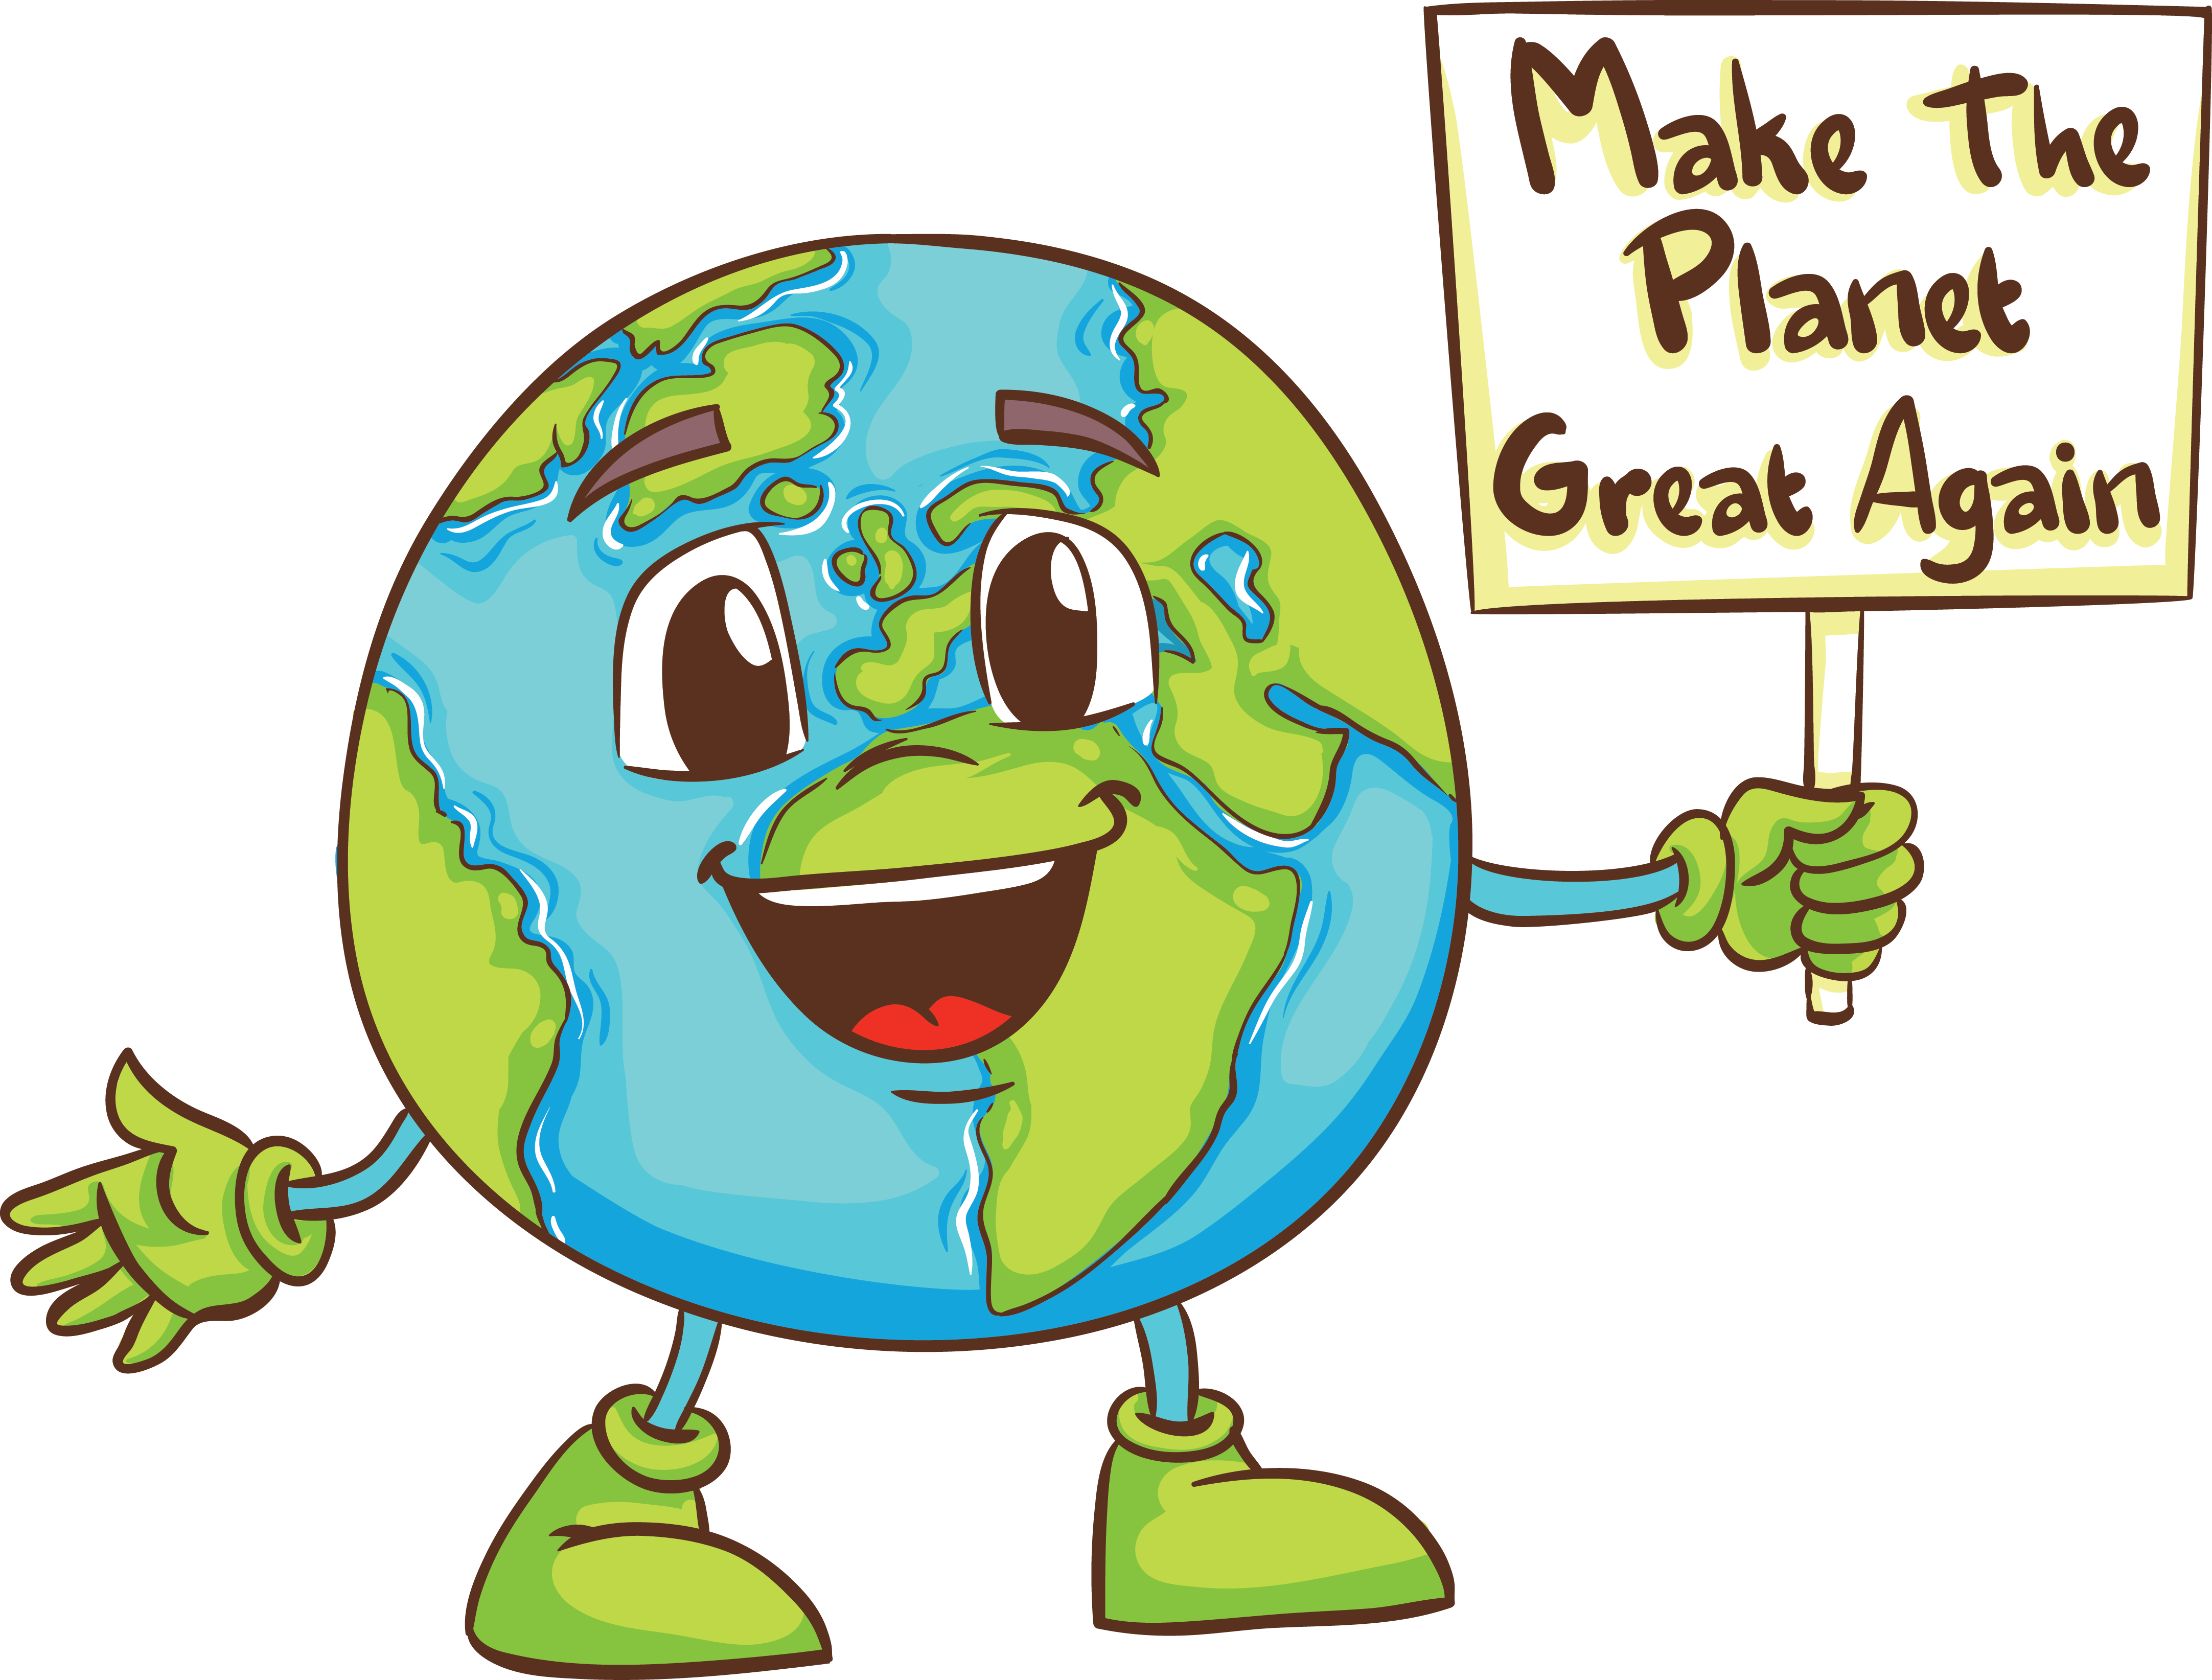 Make the Planet Great Again (no hat)